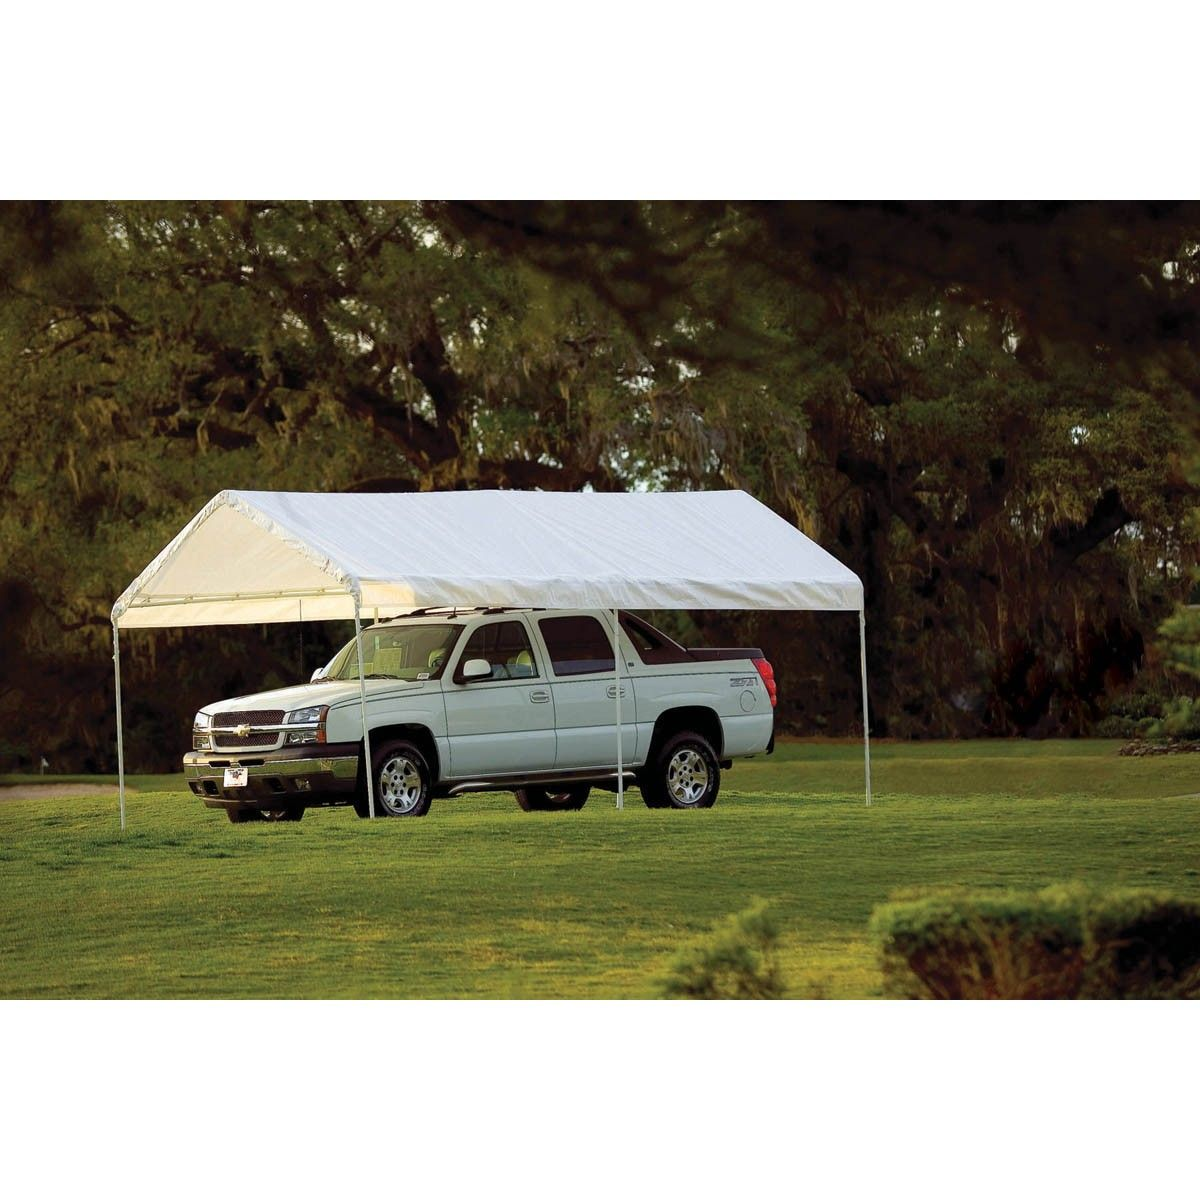 10 ft. x 20 ft. Portable Car Canopy | Car canopy, Canopy ...